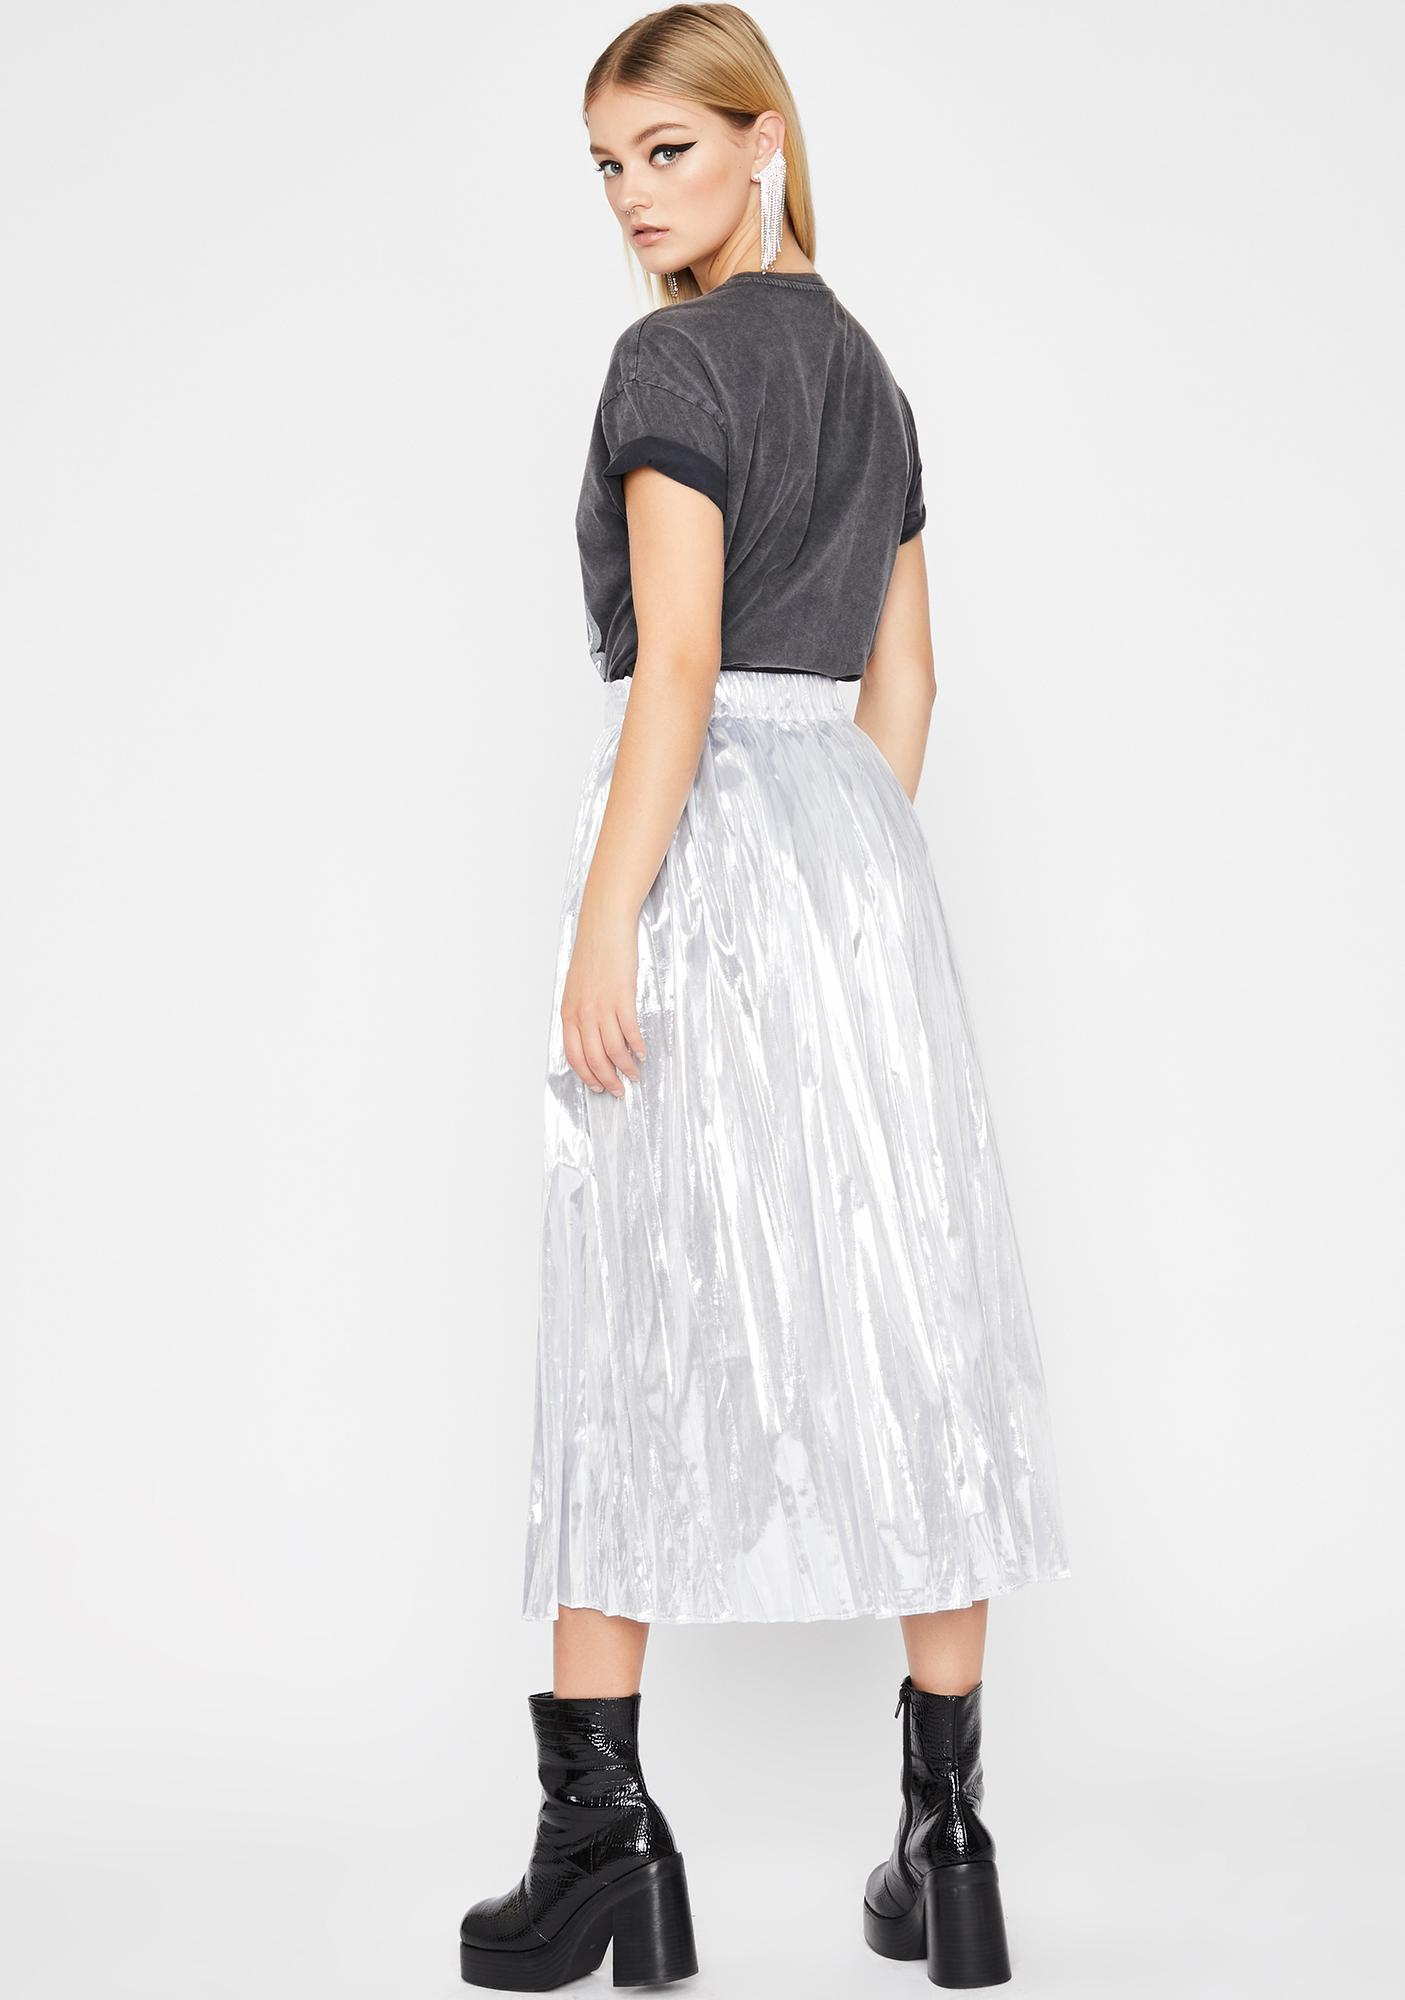 U Wish Pleated Skirt